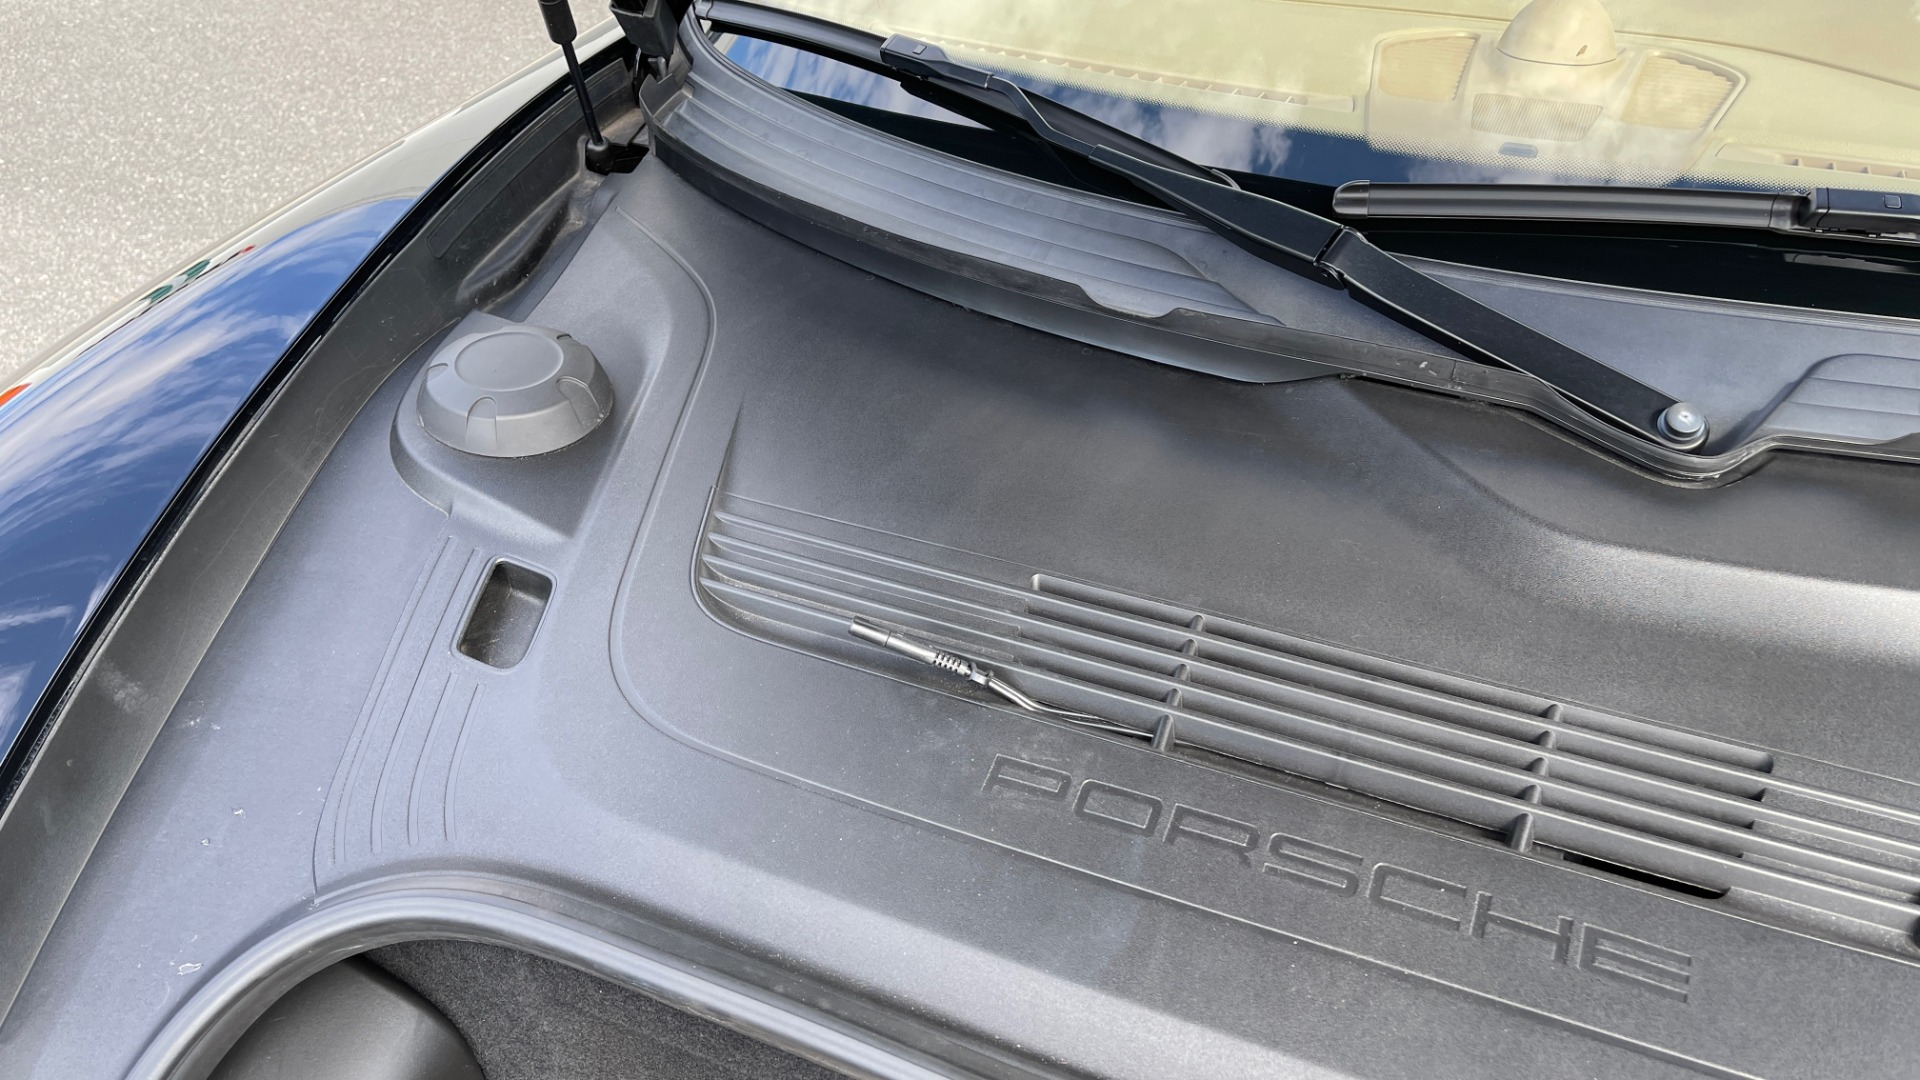 Used 2013 Porsche 911 CARRERA CABRIOLET / PDK / NAV / BOSE / HTD STS / PDLS for sale Sold at Formula Imports in Charlotte NC 28227 22